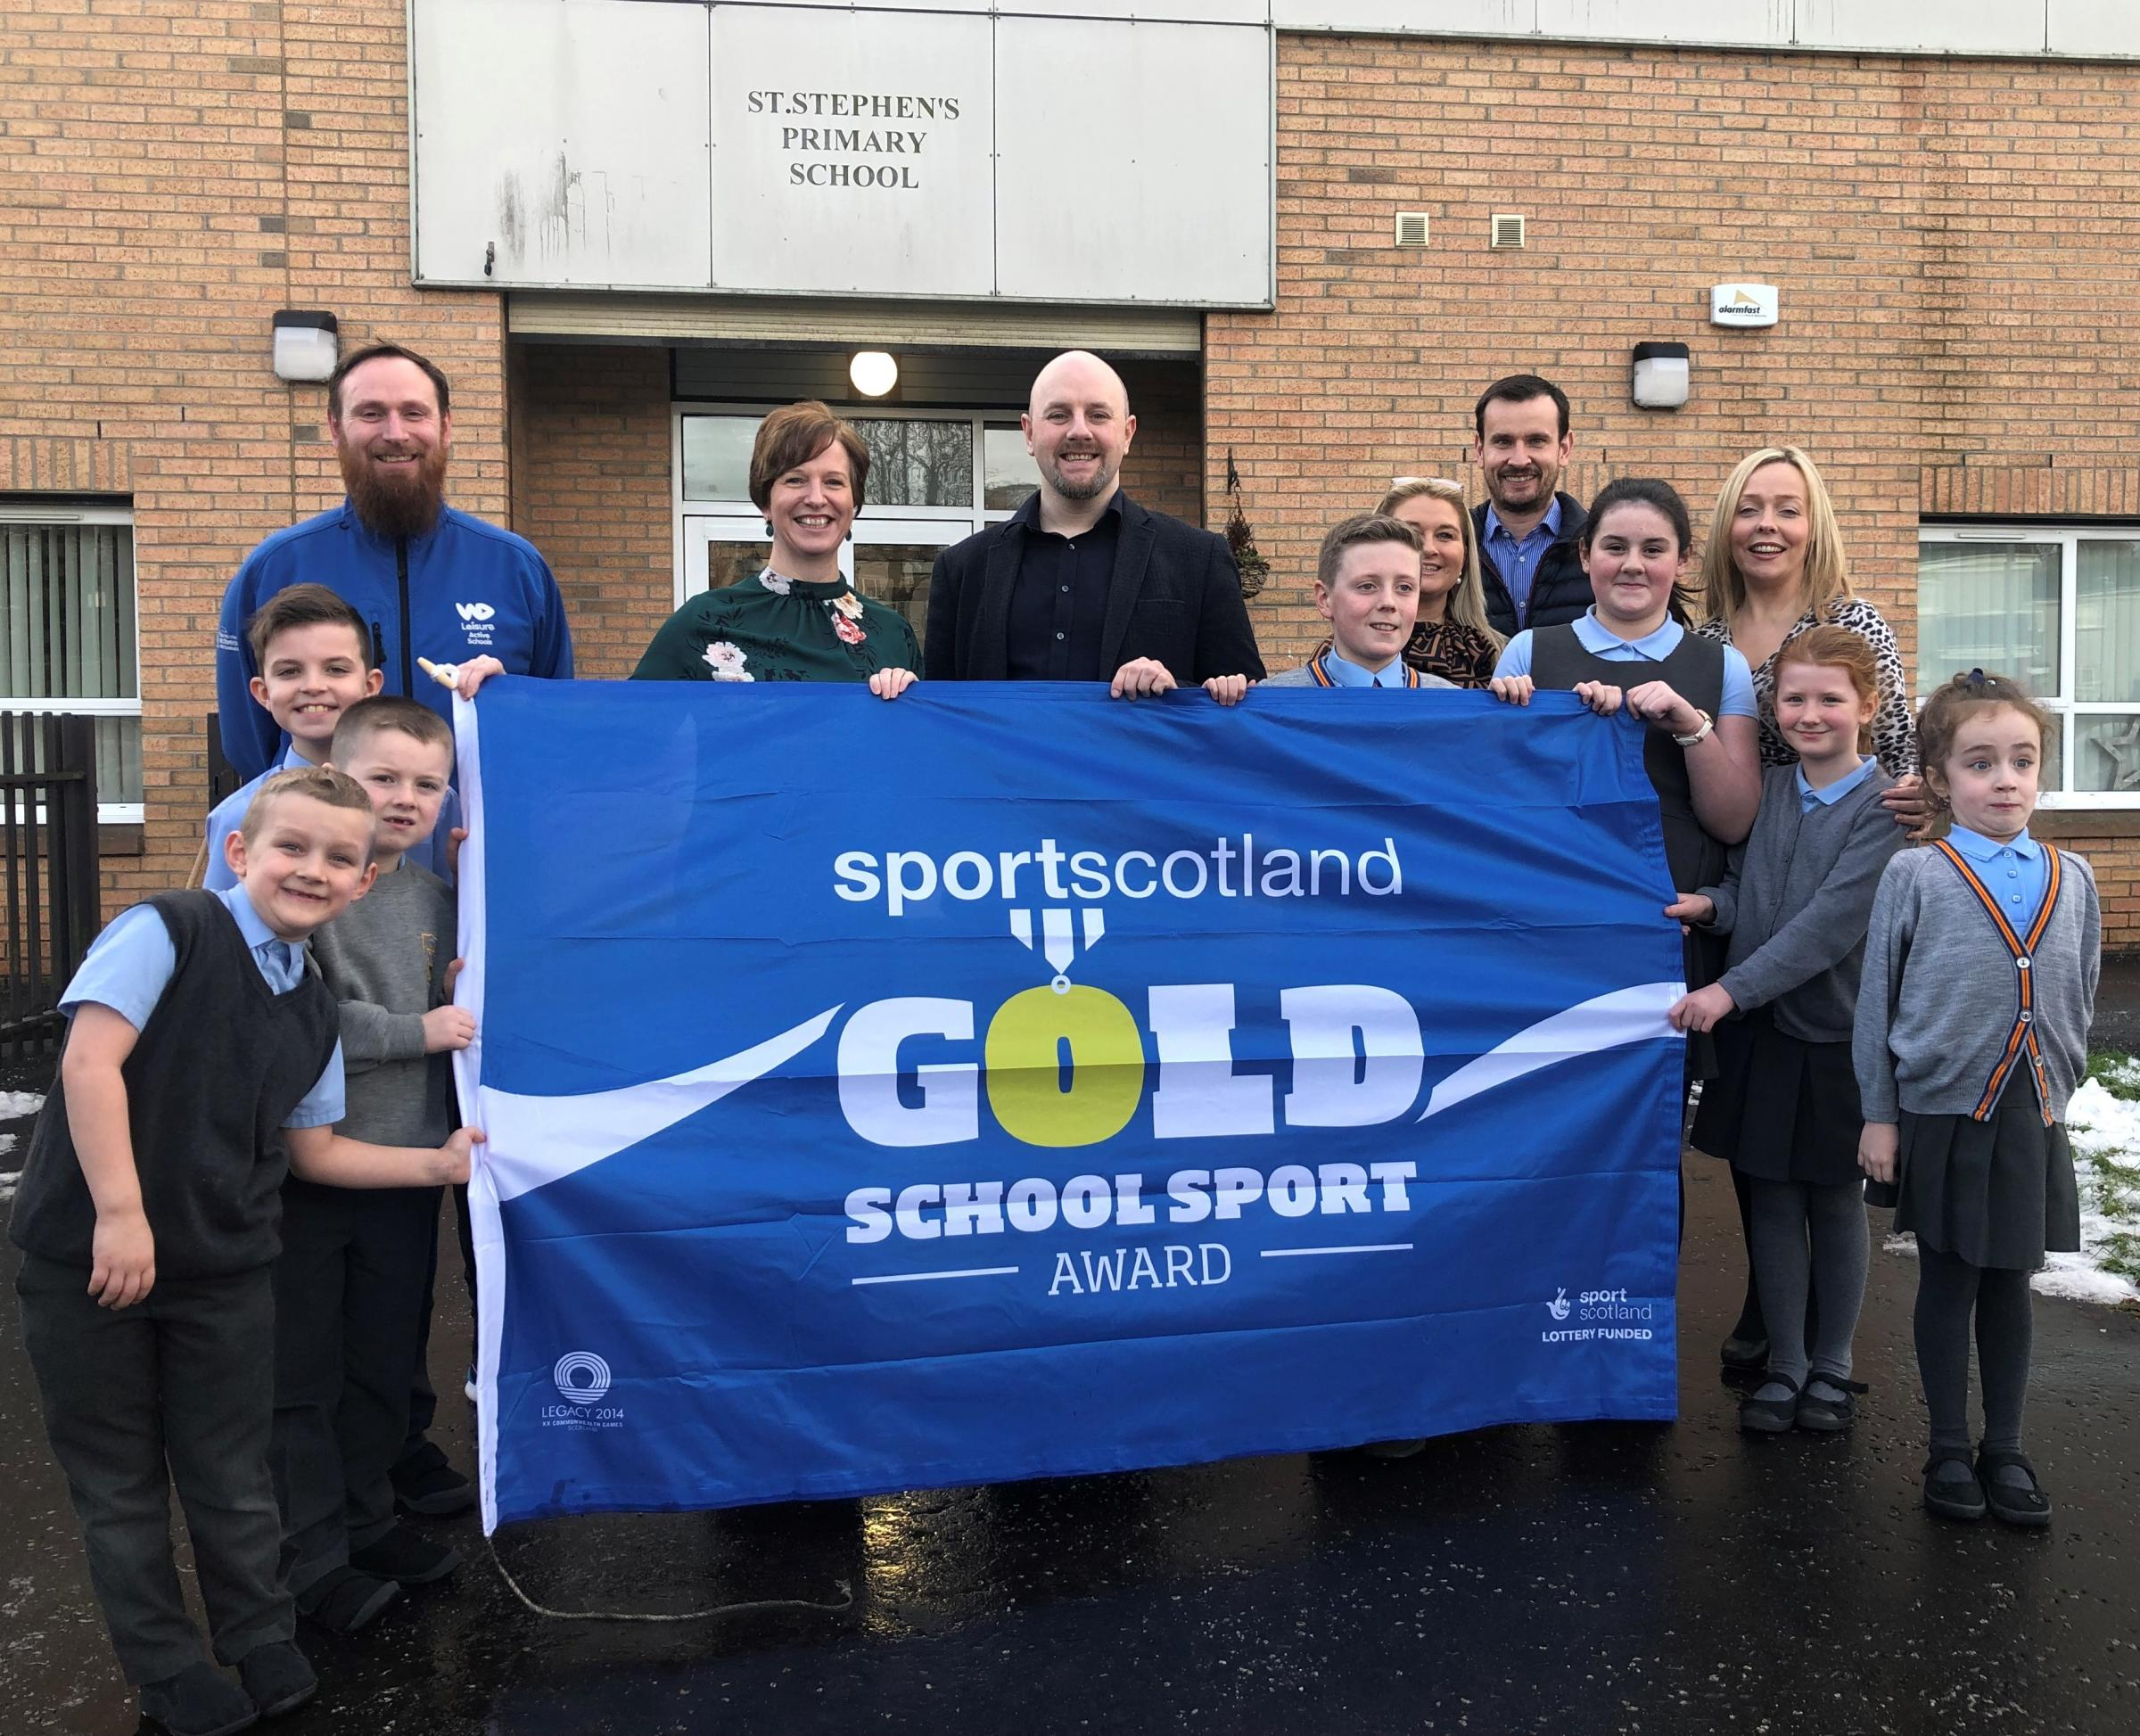 St Stephen's Primary in Clydebank received the Gold Award for sports